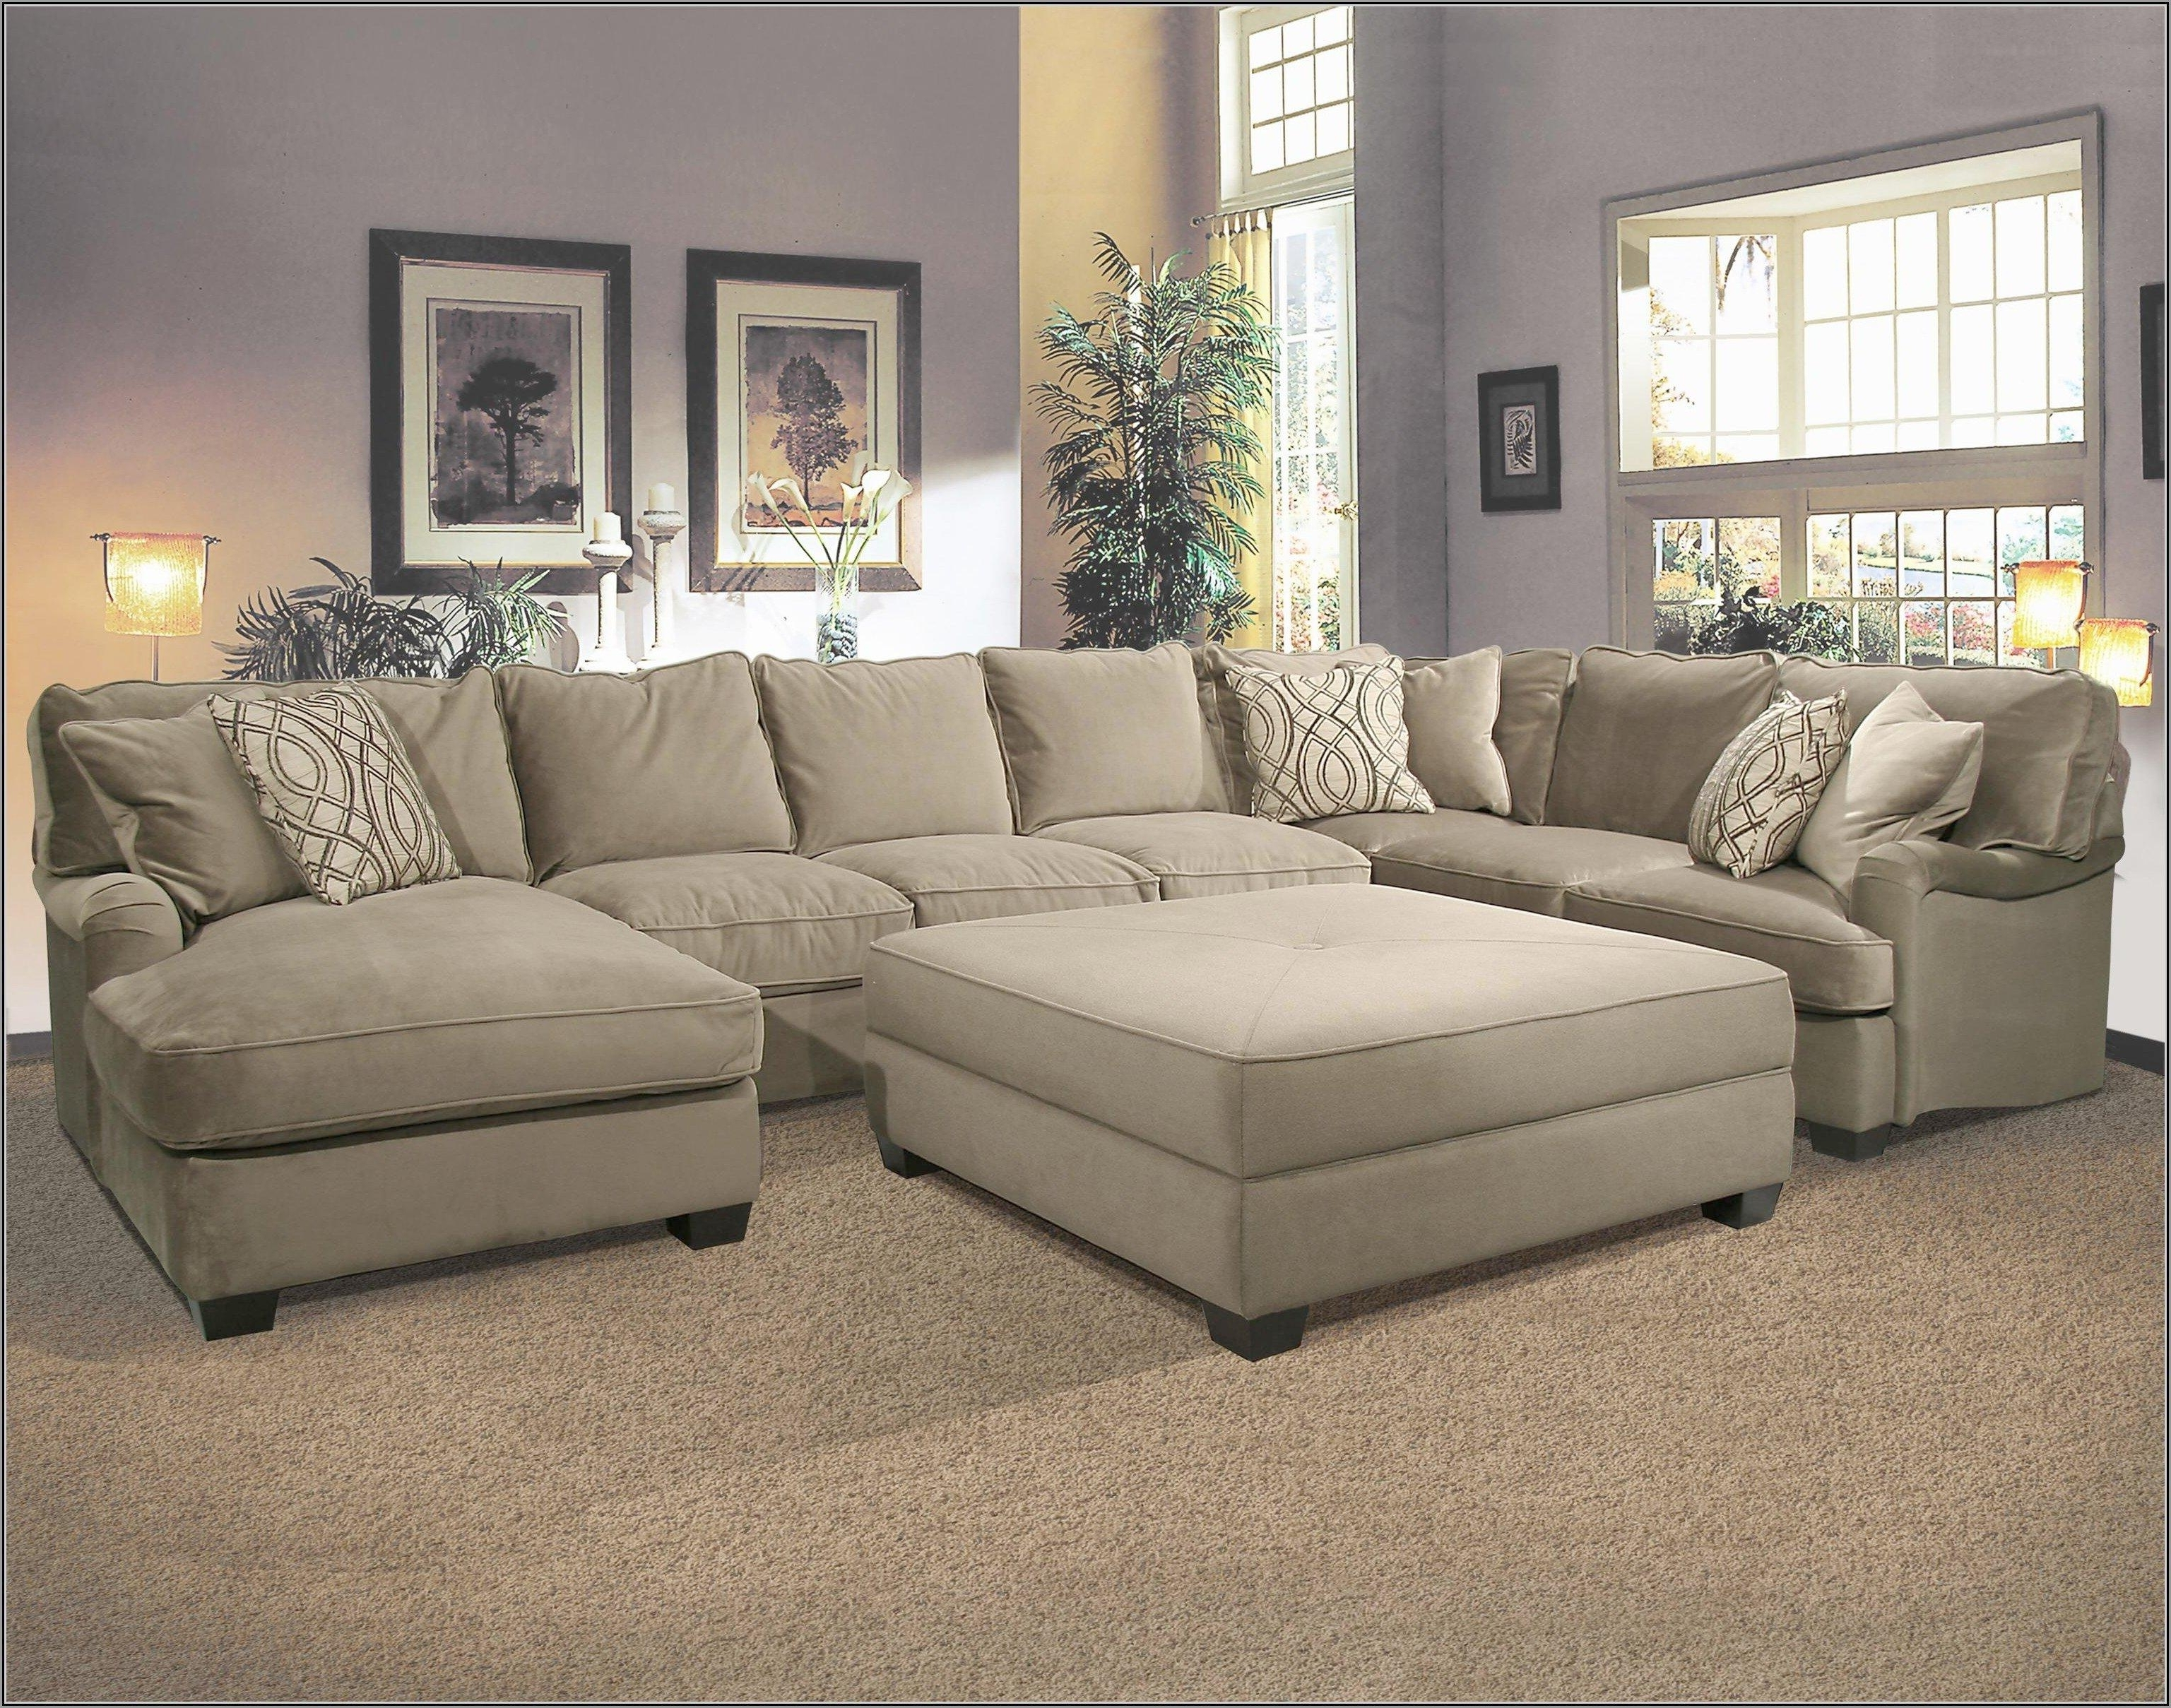 Sofas With Ottoman Pertaining To Well Known Sofa : Deep Seated Sectional New Sectional Sofa With Ottoman Deep (View 16 of 20)